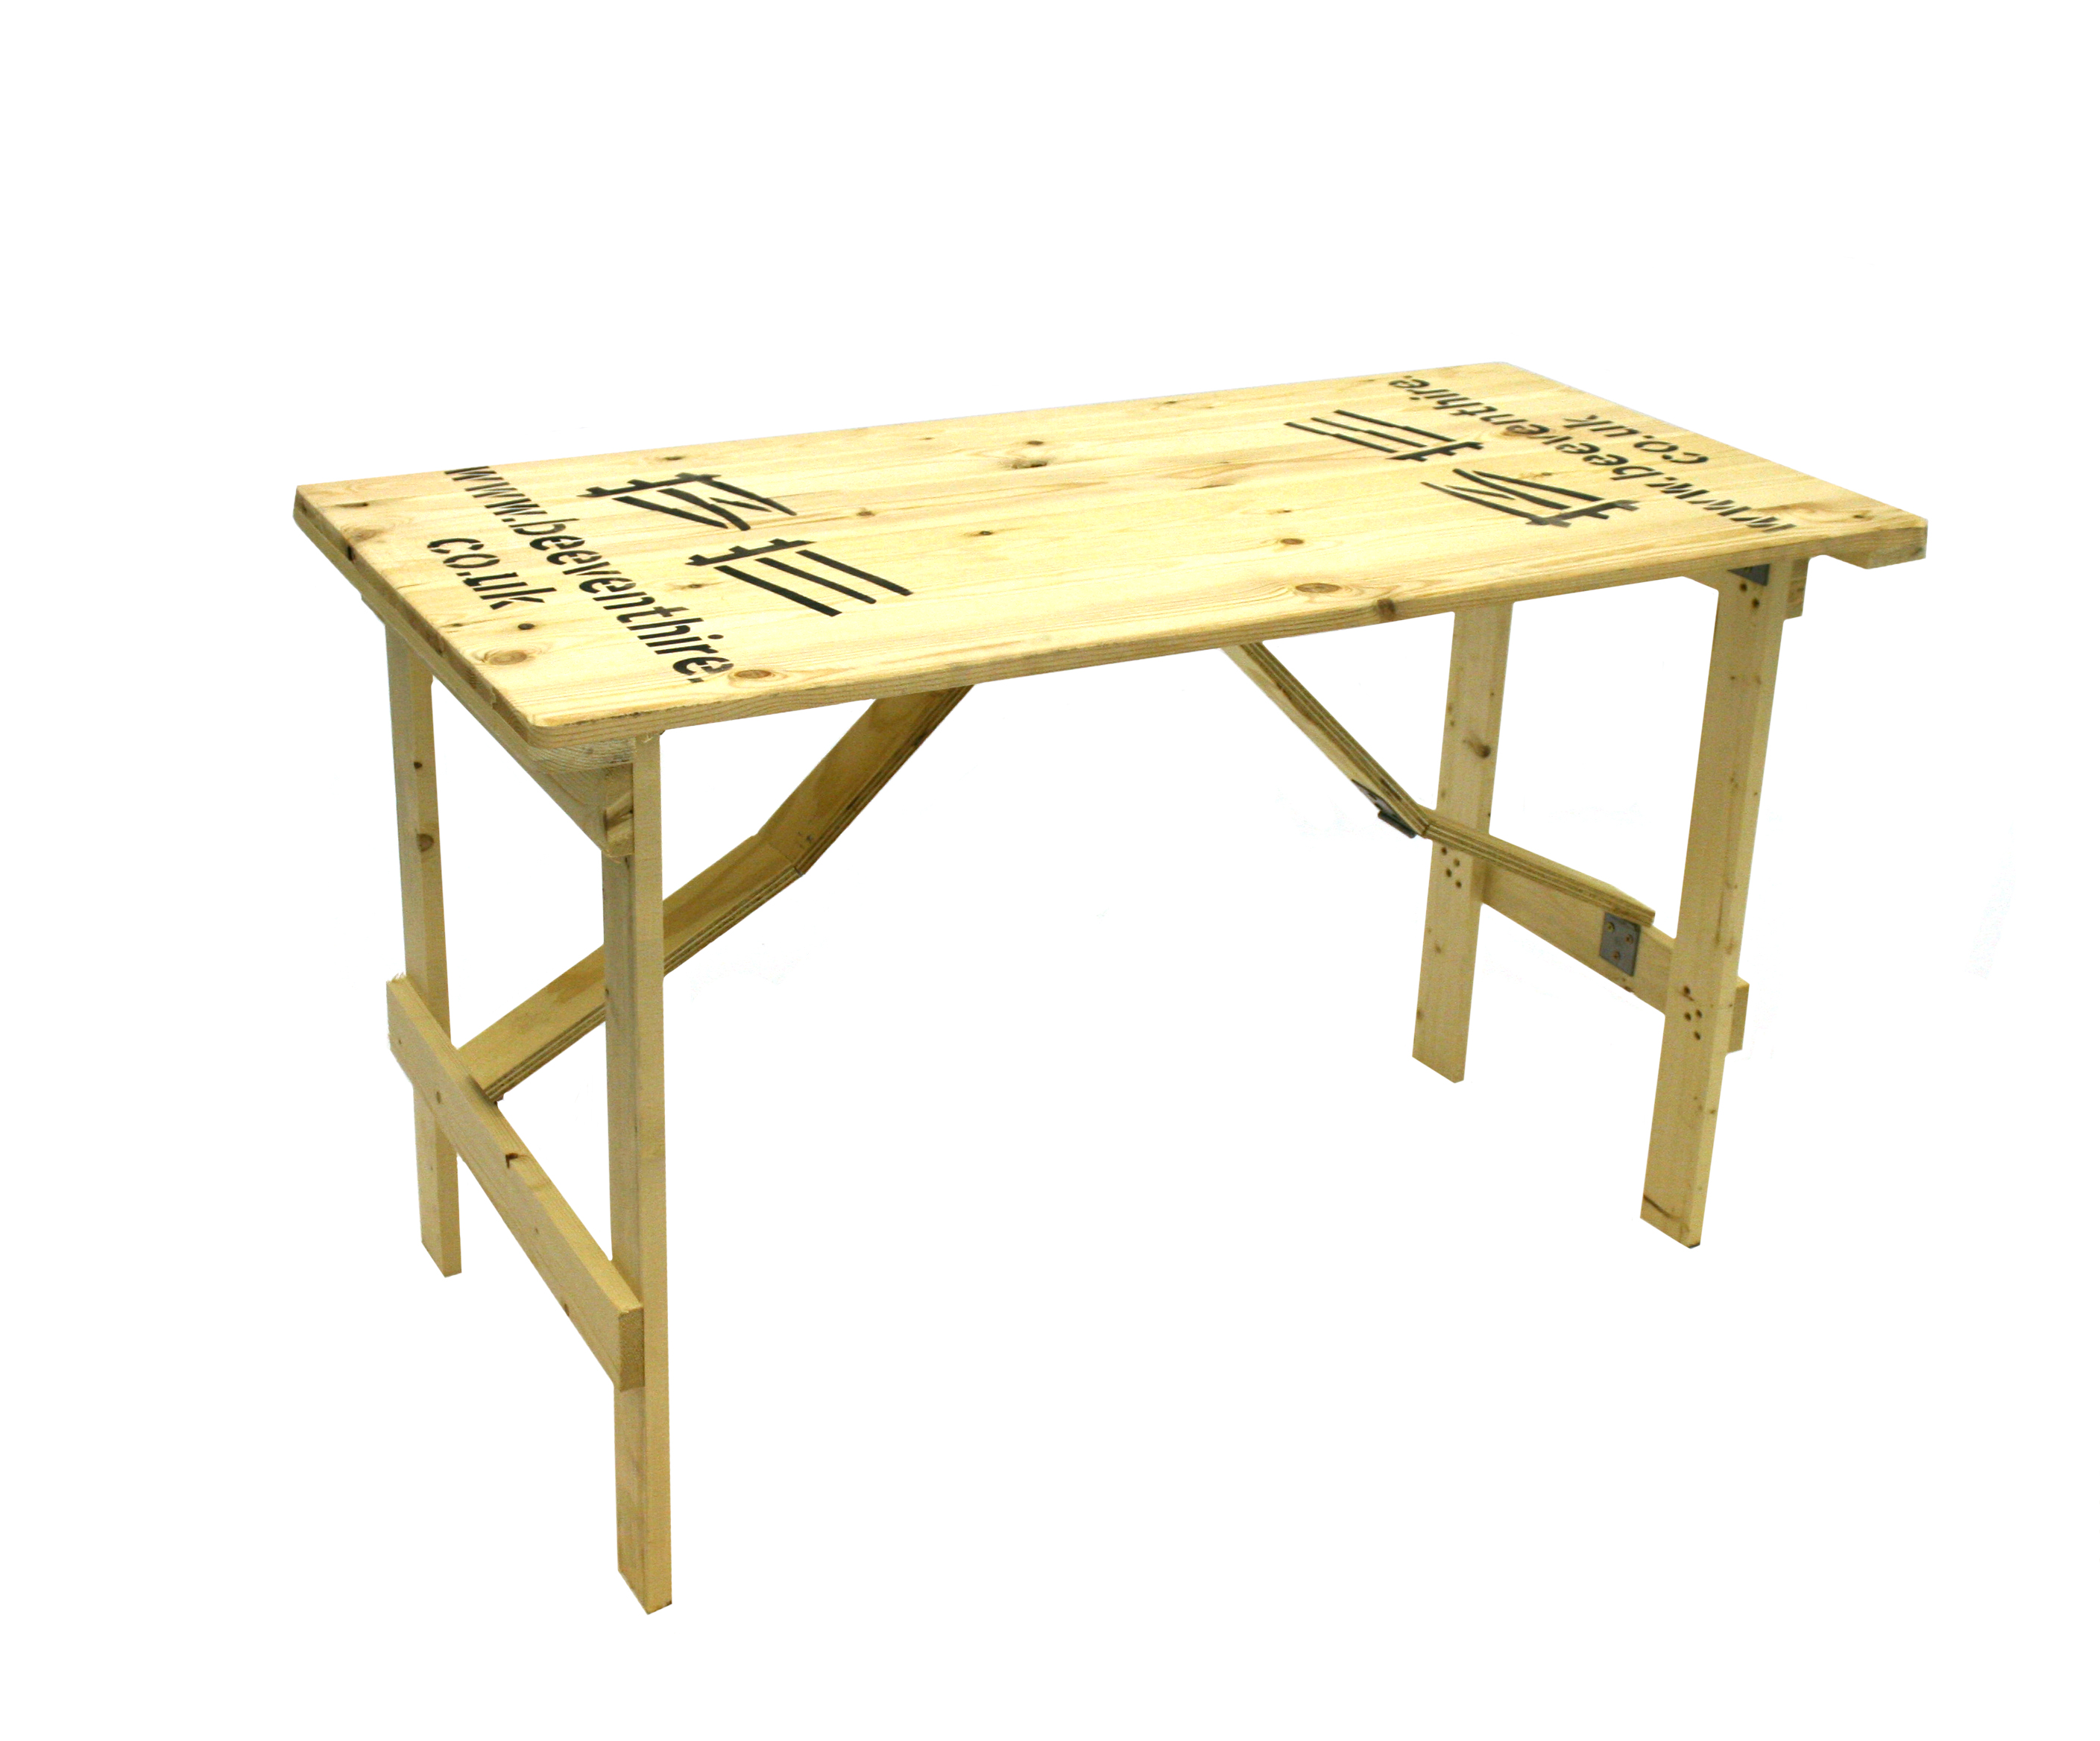 Wooden Trestle Table Hire - 4' x 2' 6' Trestle Tables - BE Event Hire